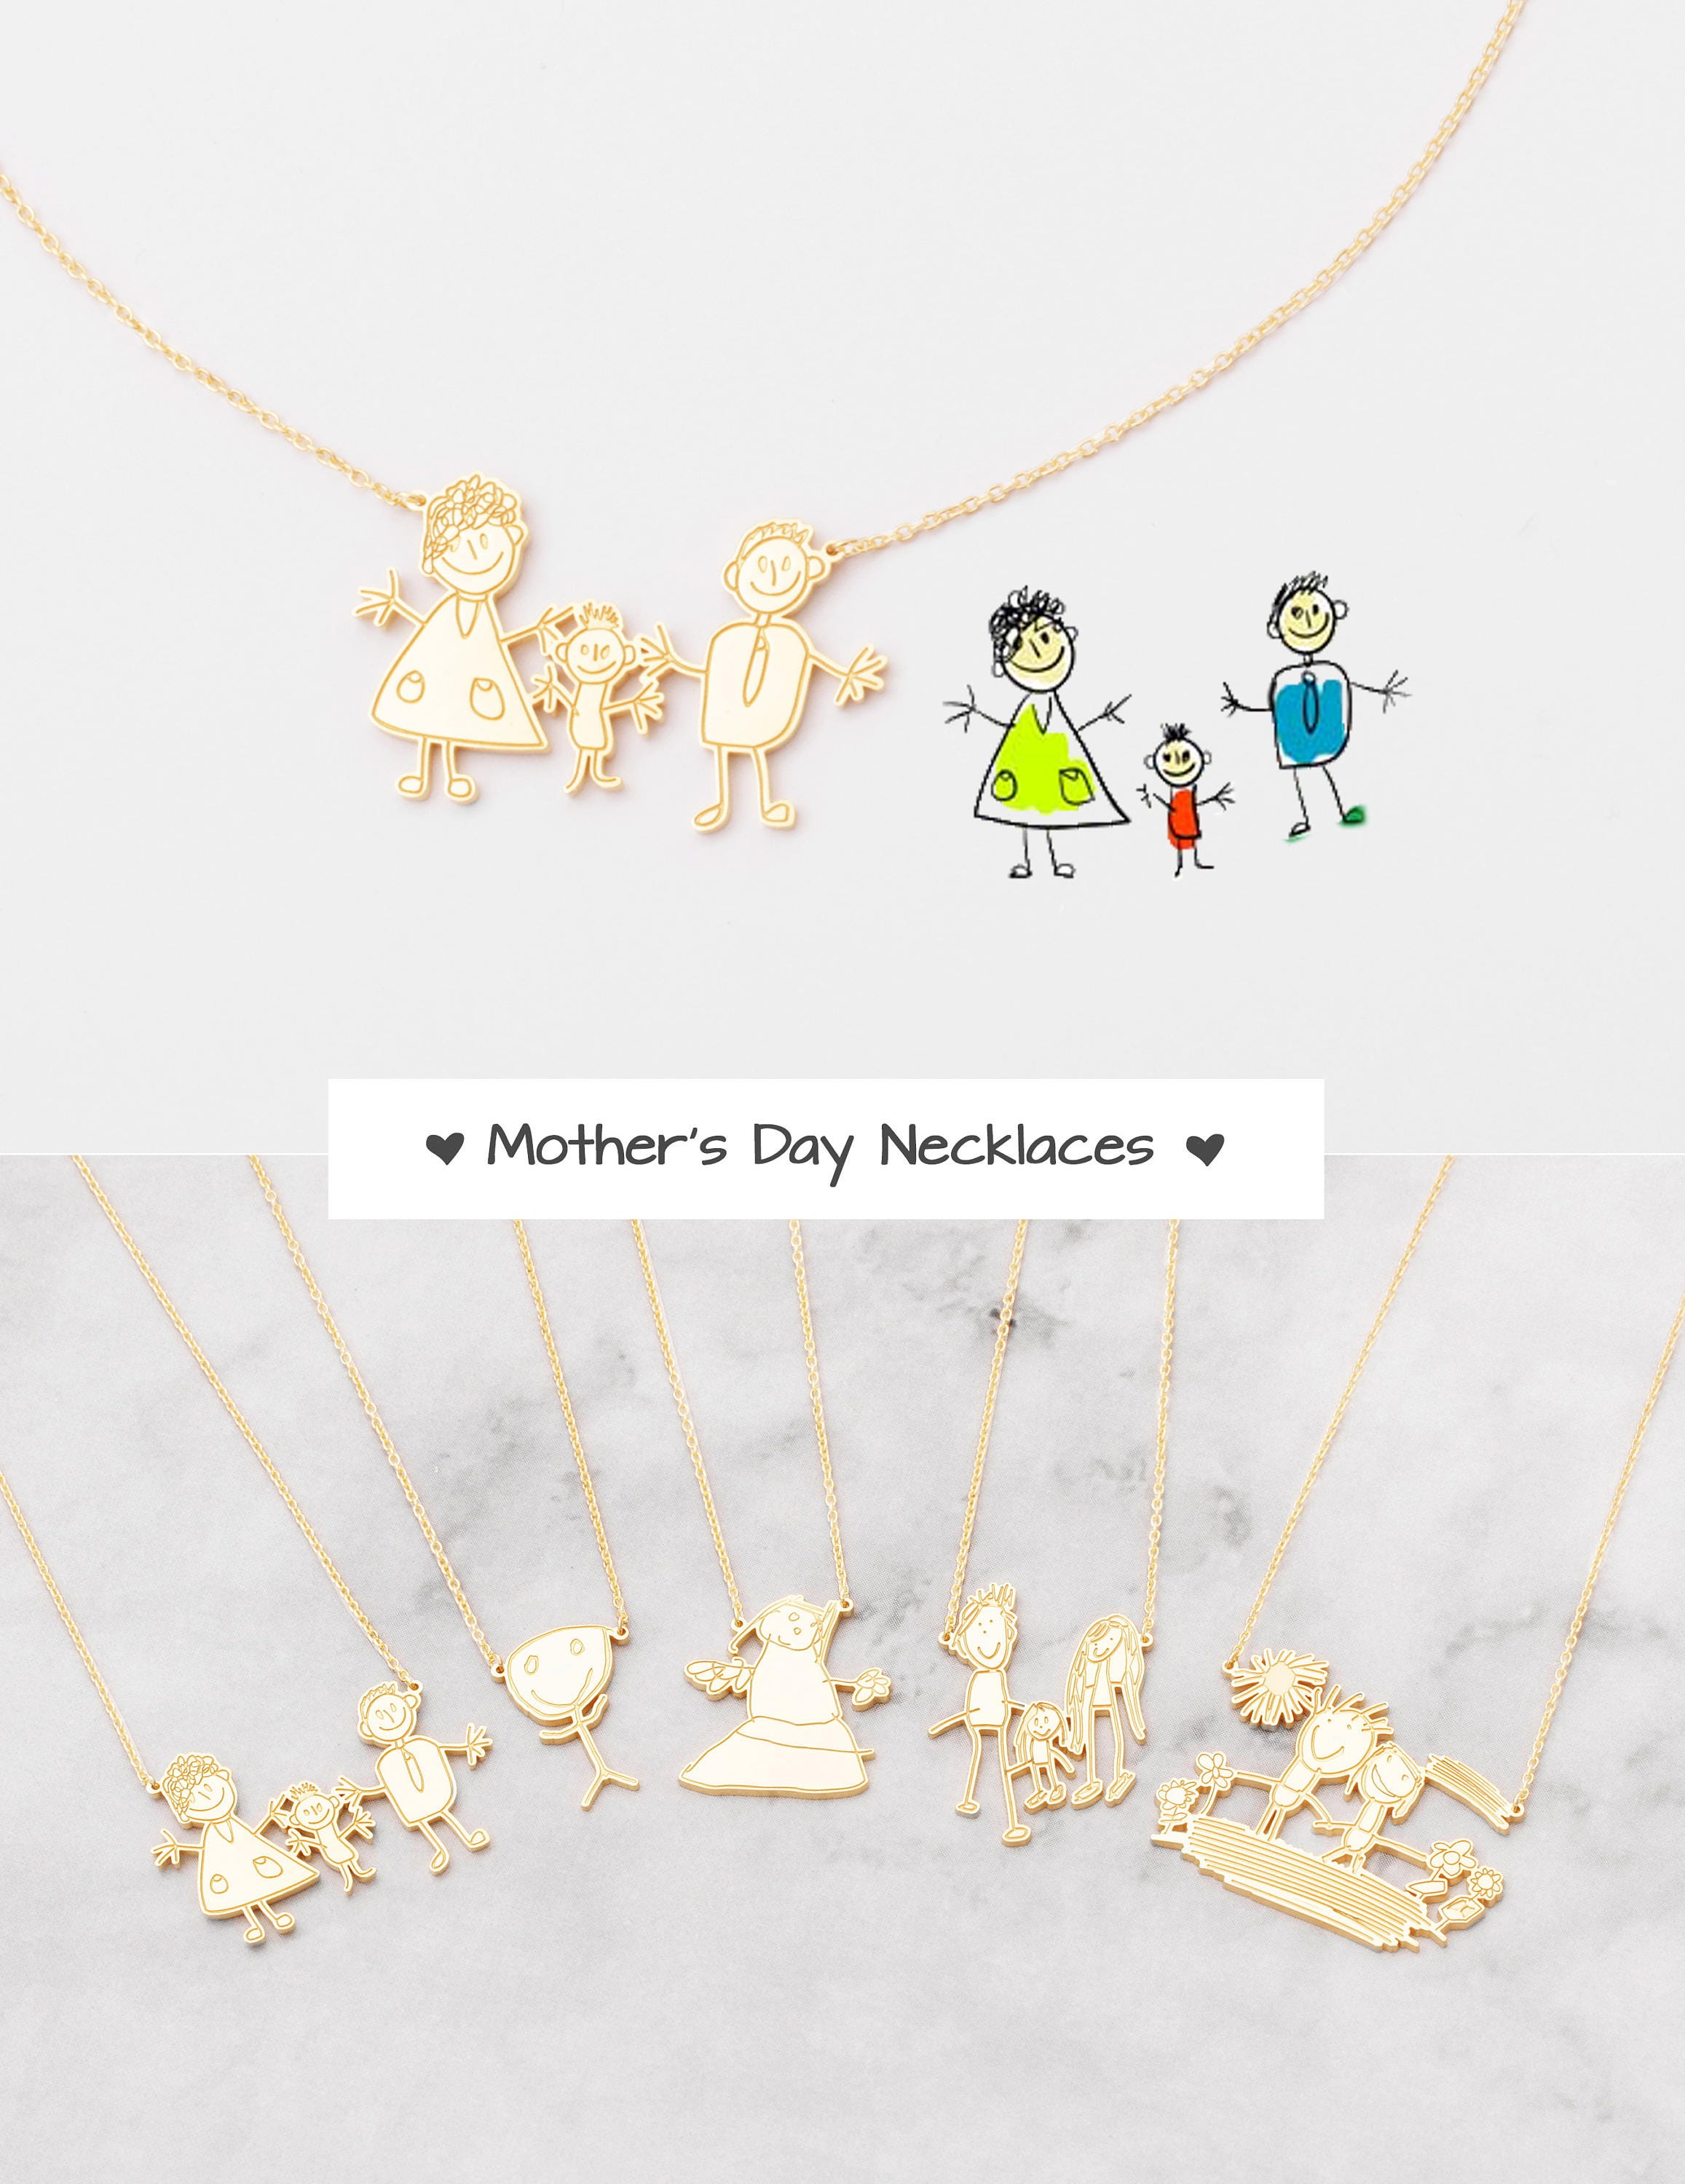 product necklace gold inch s carded today childrens jewelry children chain free overstock shipping watches rope